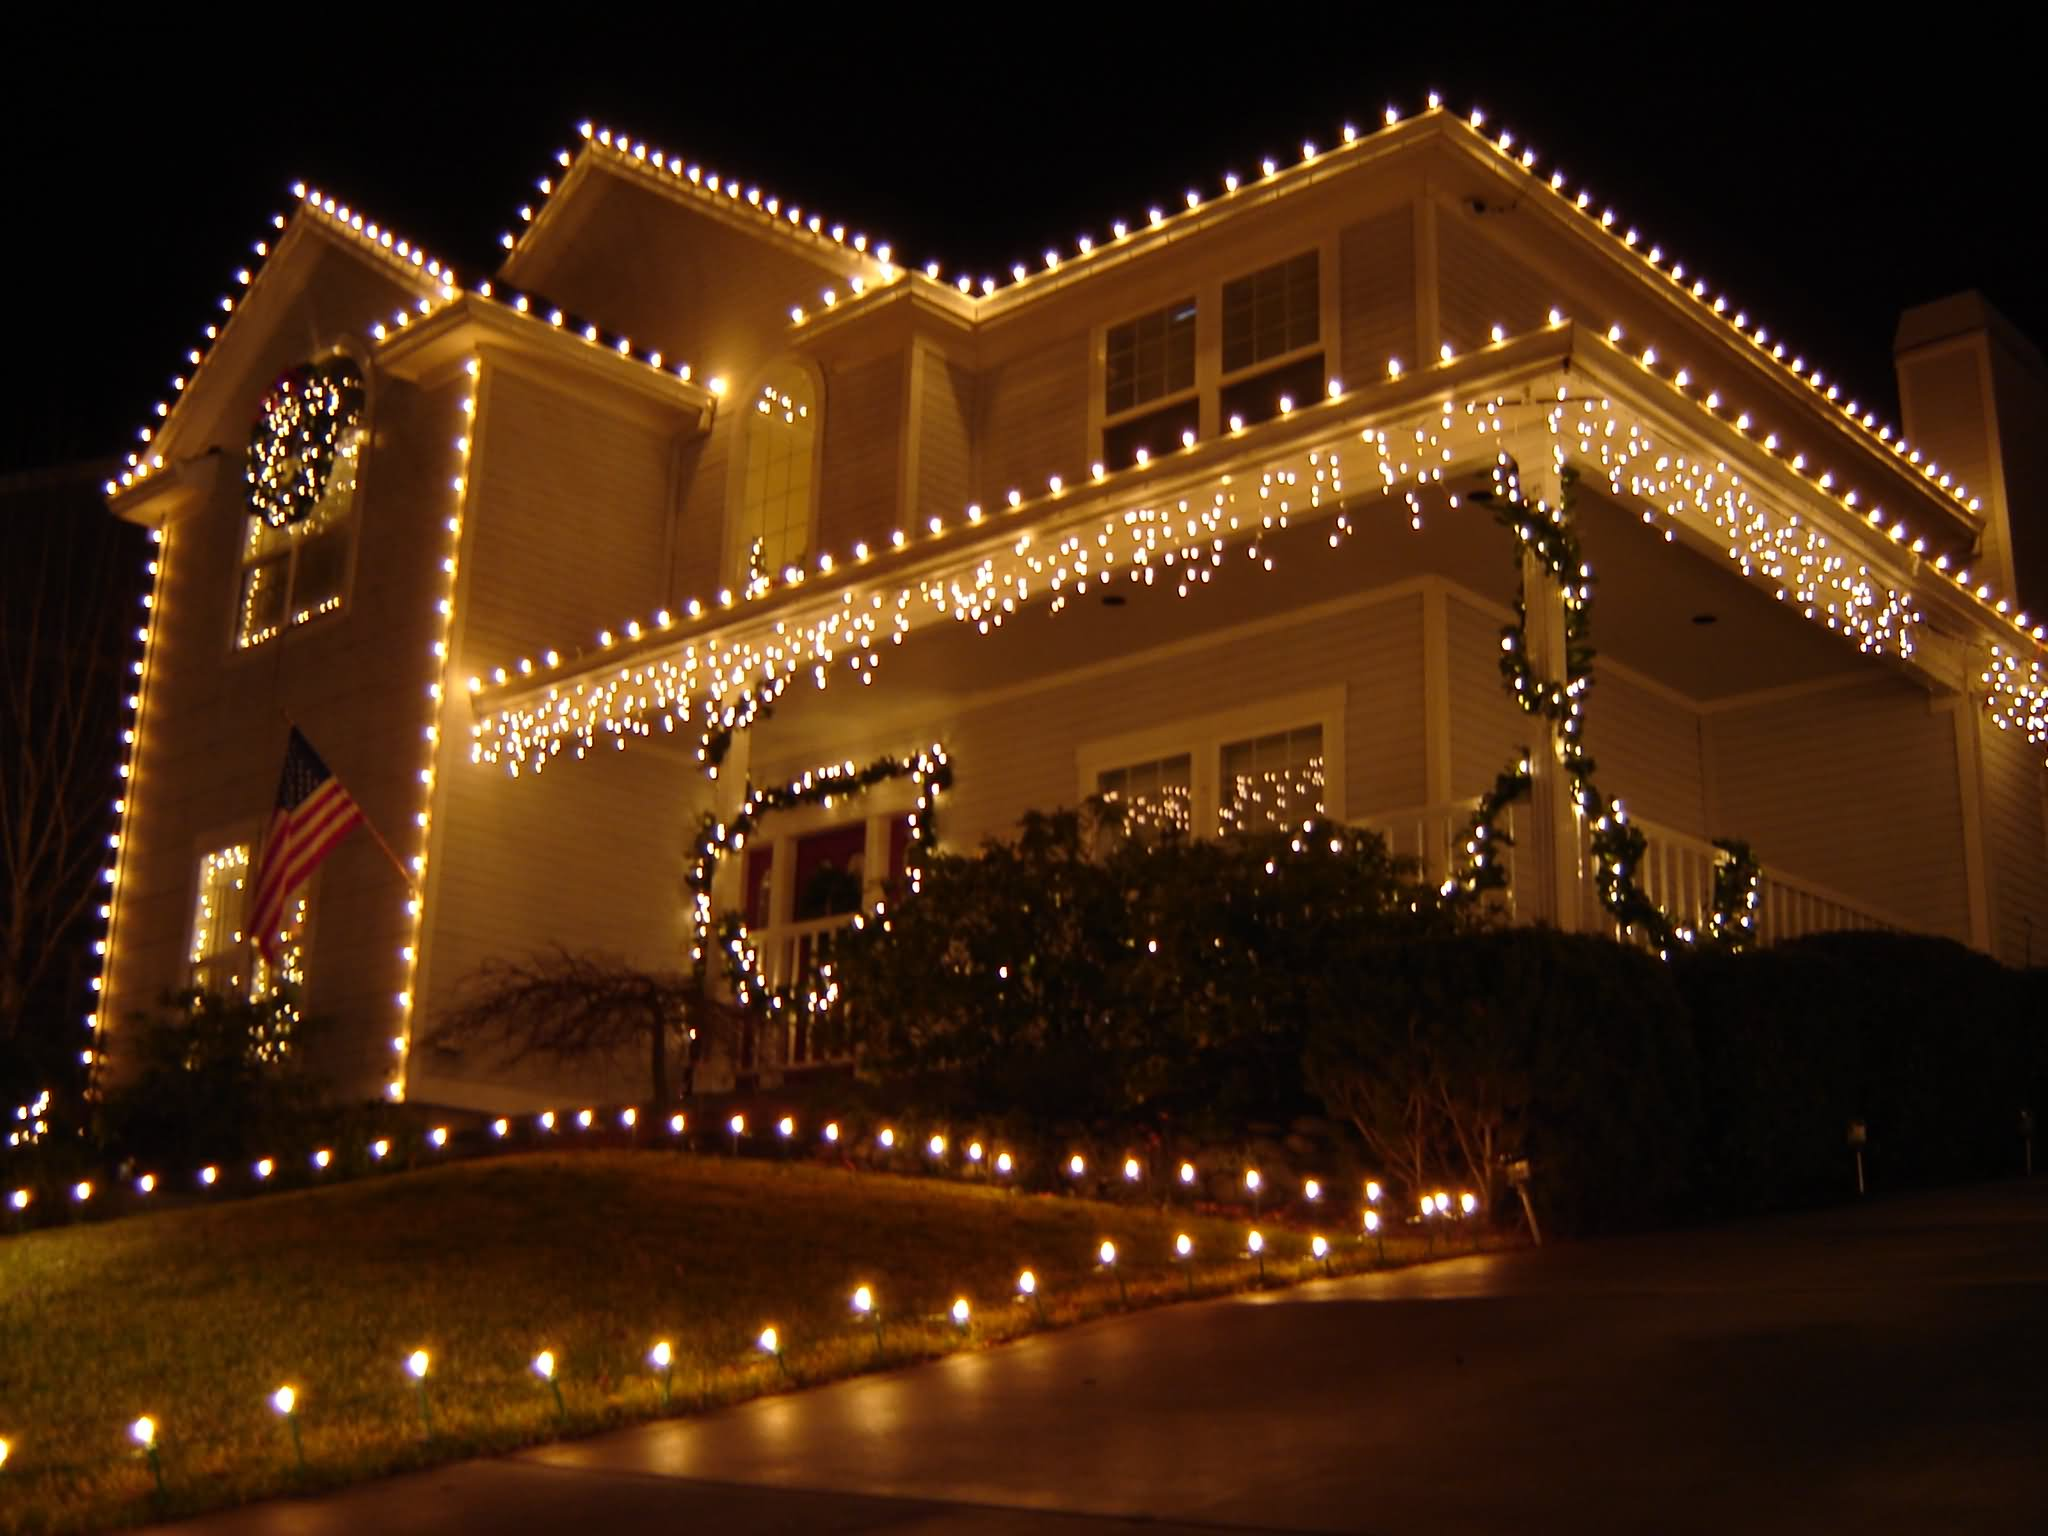 20 most wonderful lights decoration ideas for christmas - Christmas house lights ideas ...